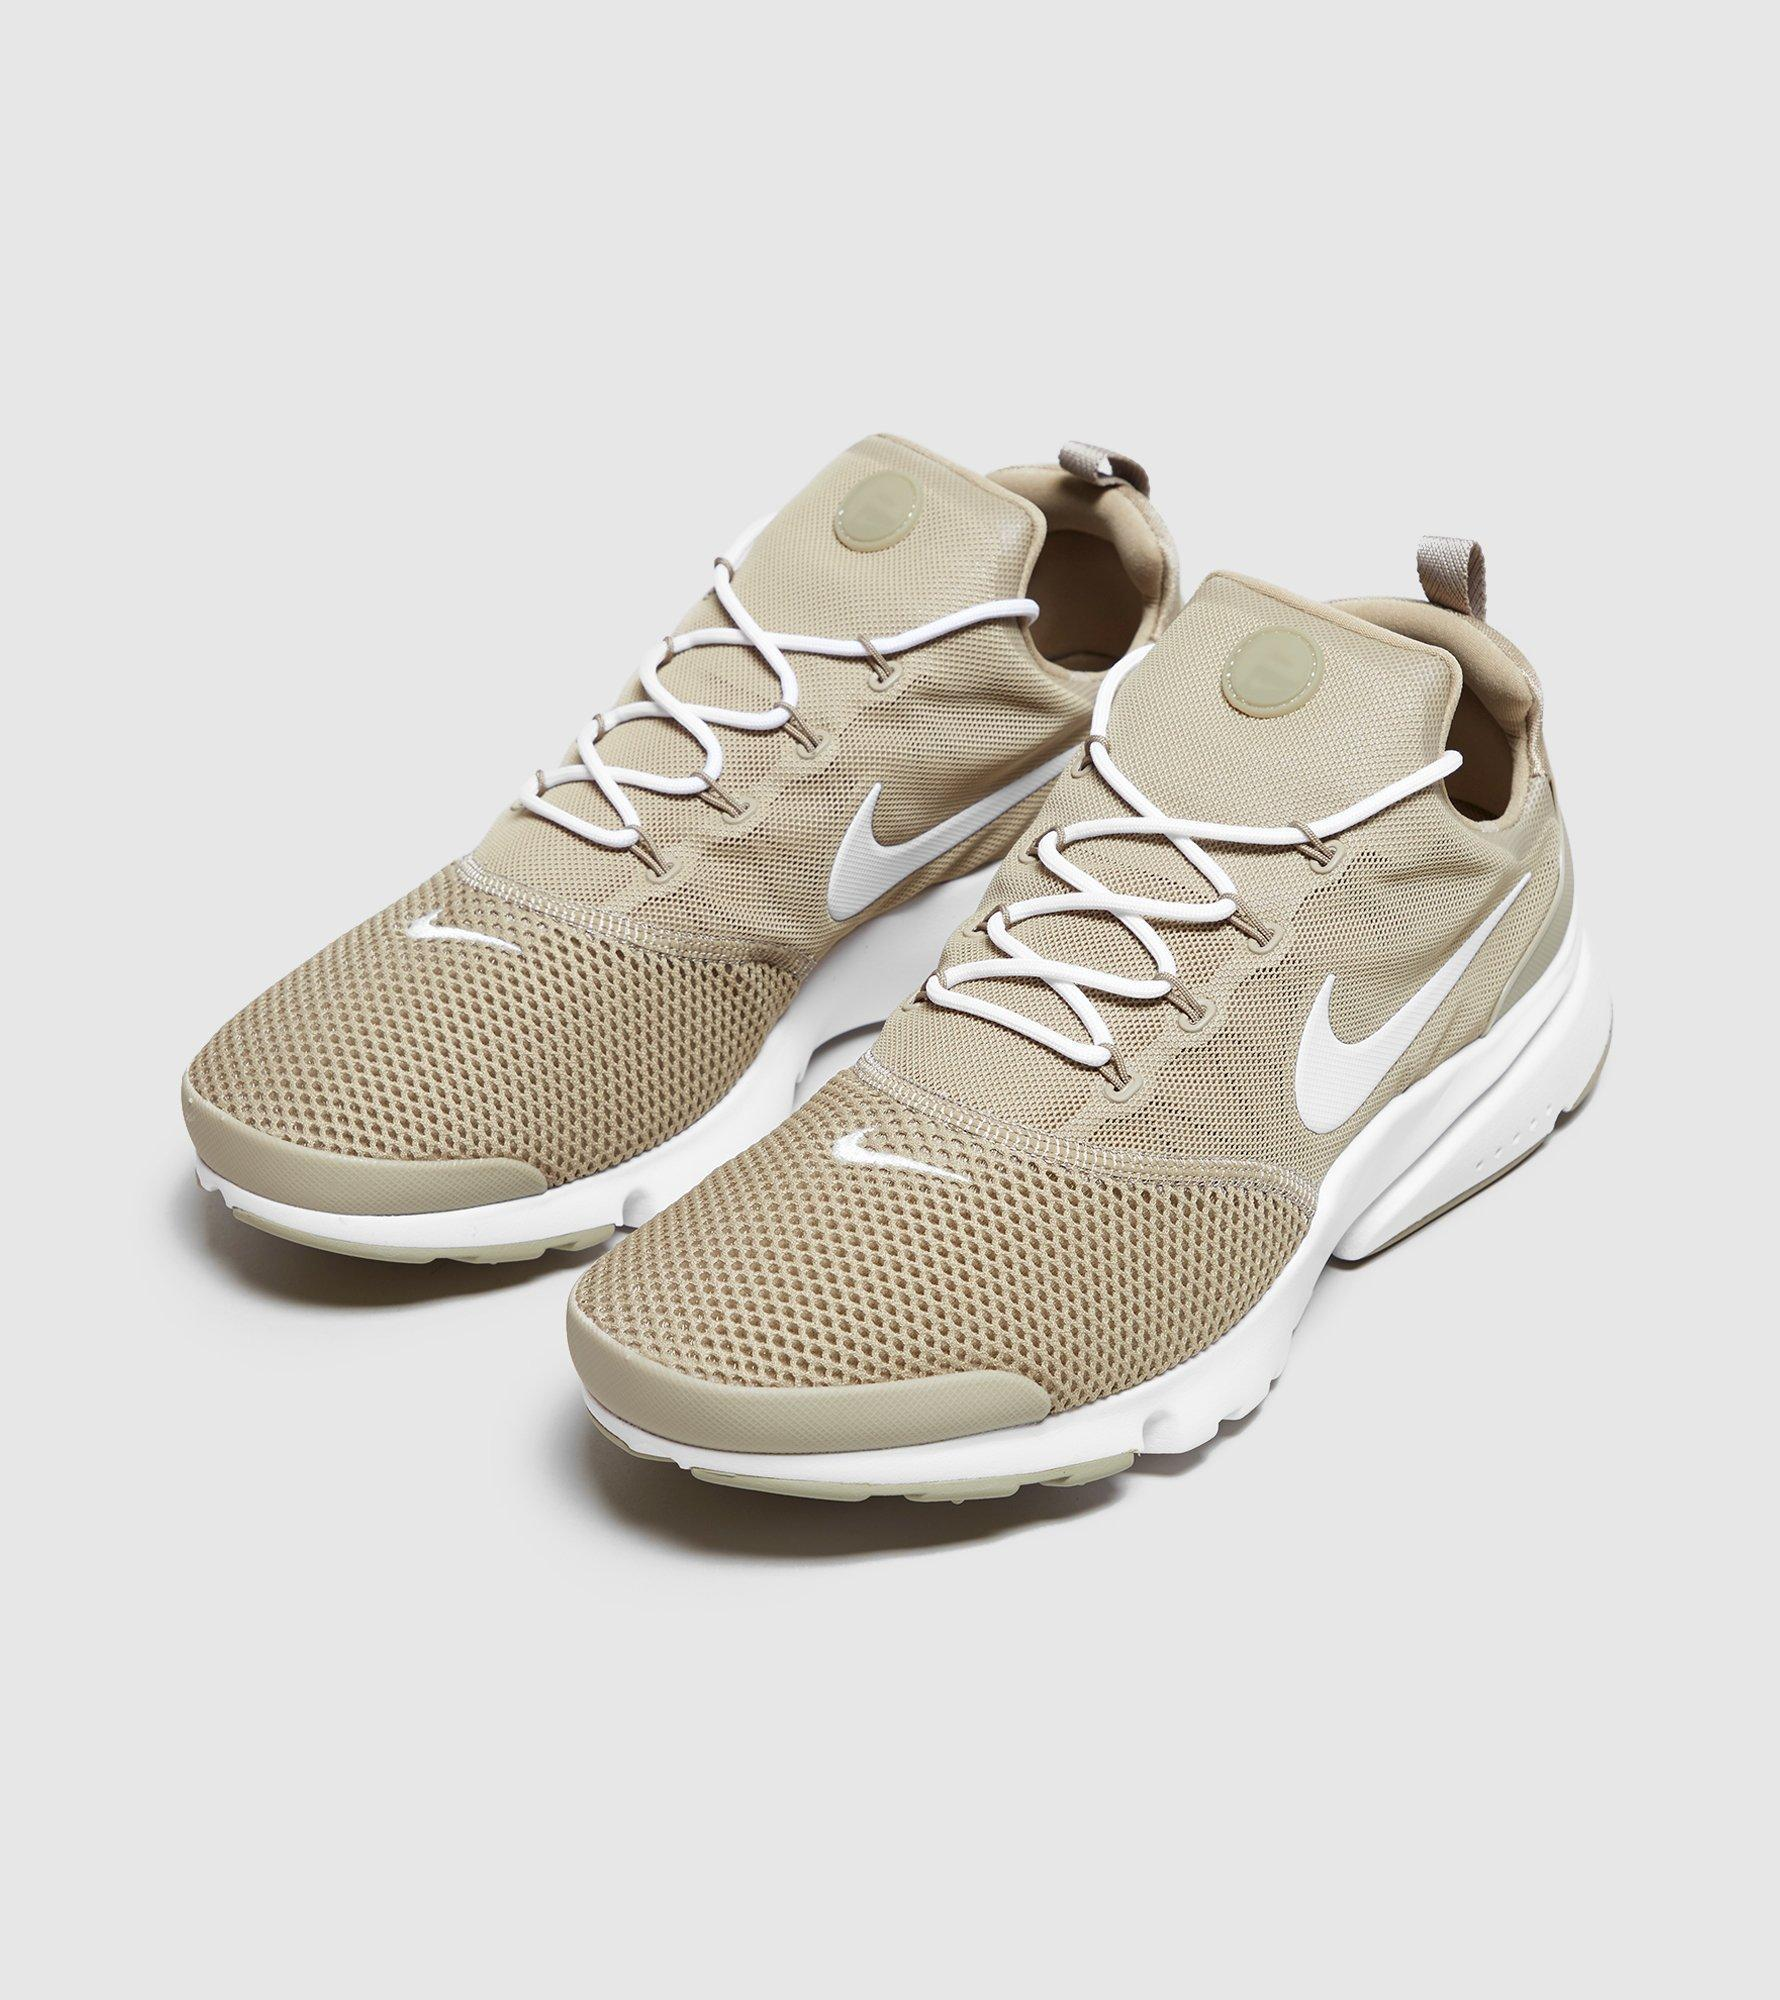 discount code for nike air presto high top white oil f93d2 89fda ae87ecce0